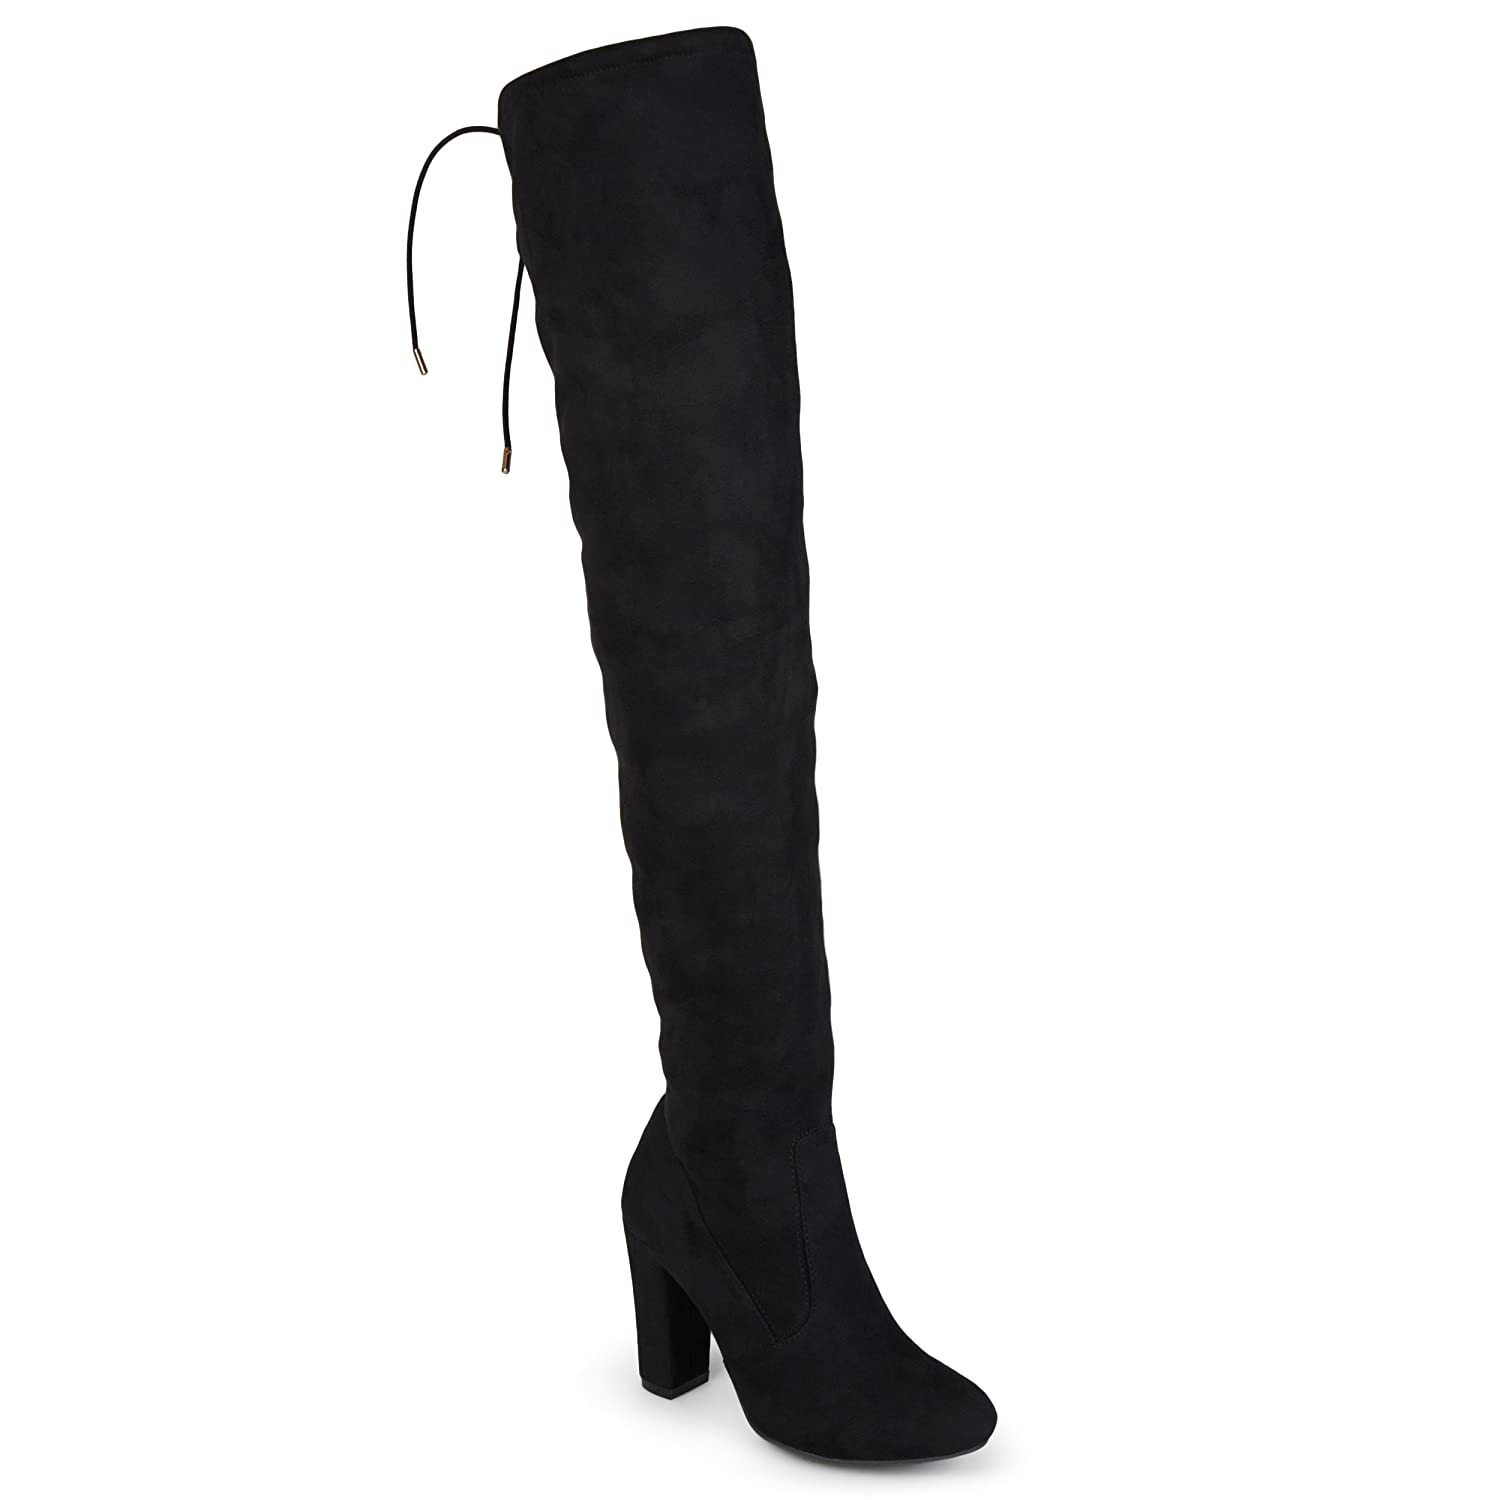 Journee Collection Womens Regular and Wide-Calf Faux Suede Over-The-Knee Boots B01I5IDPTQ 7 B(M) US|Black